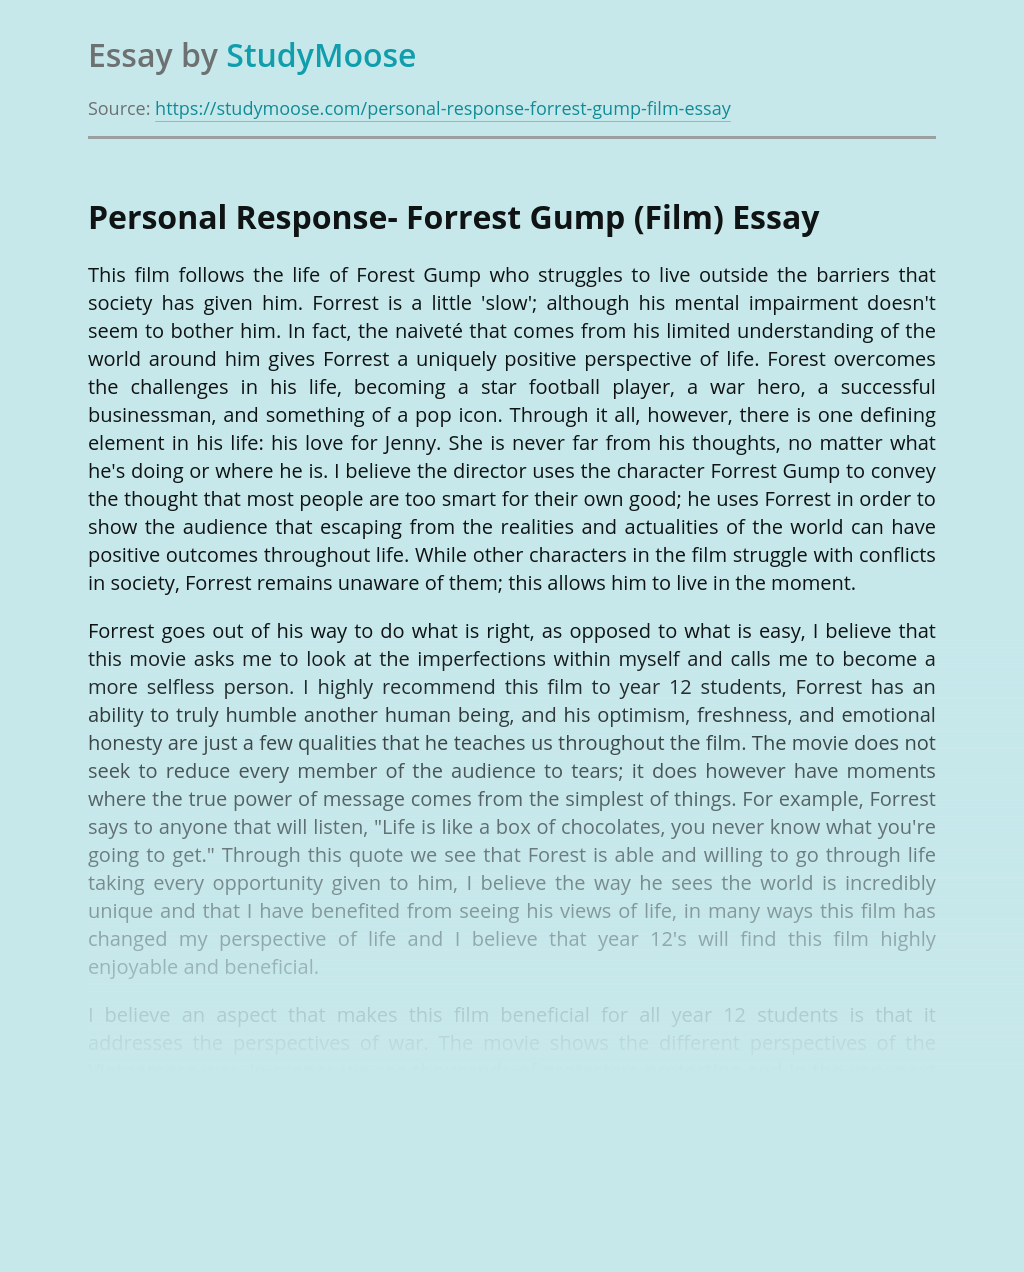 Personal Response- Forrest Gump (Film)